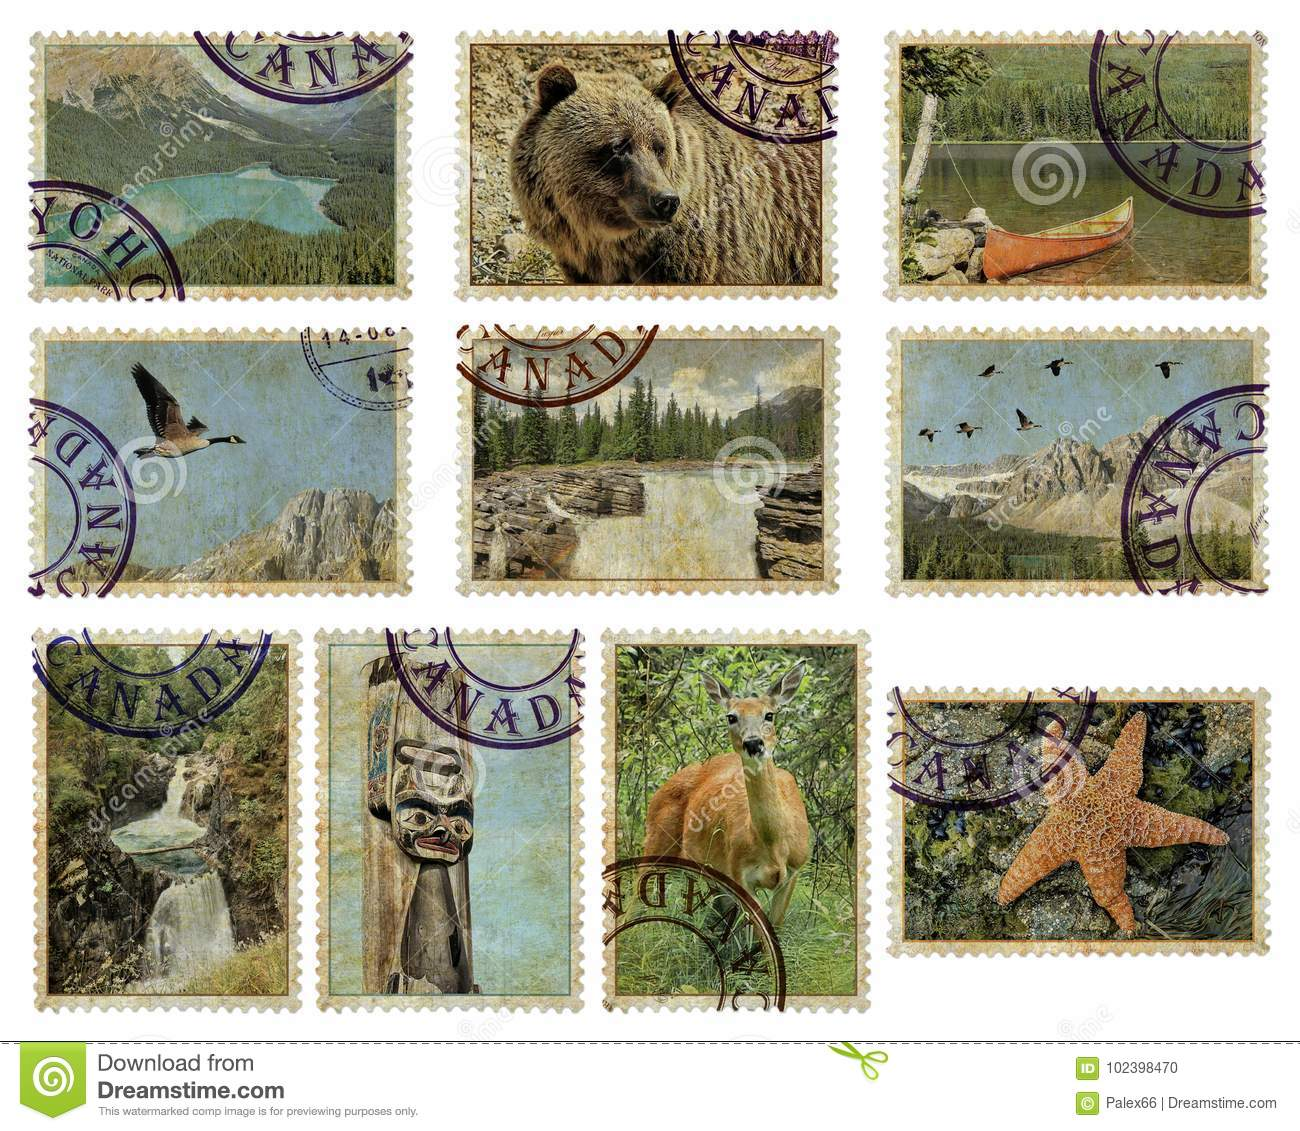 Canada Postage Stamps Stock Photo Image Of Landscapes 102398470